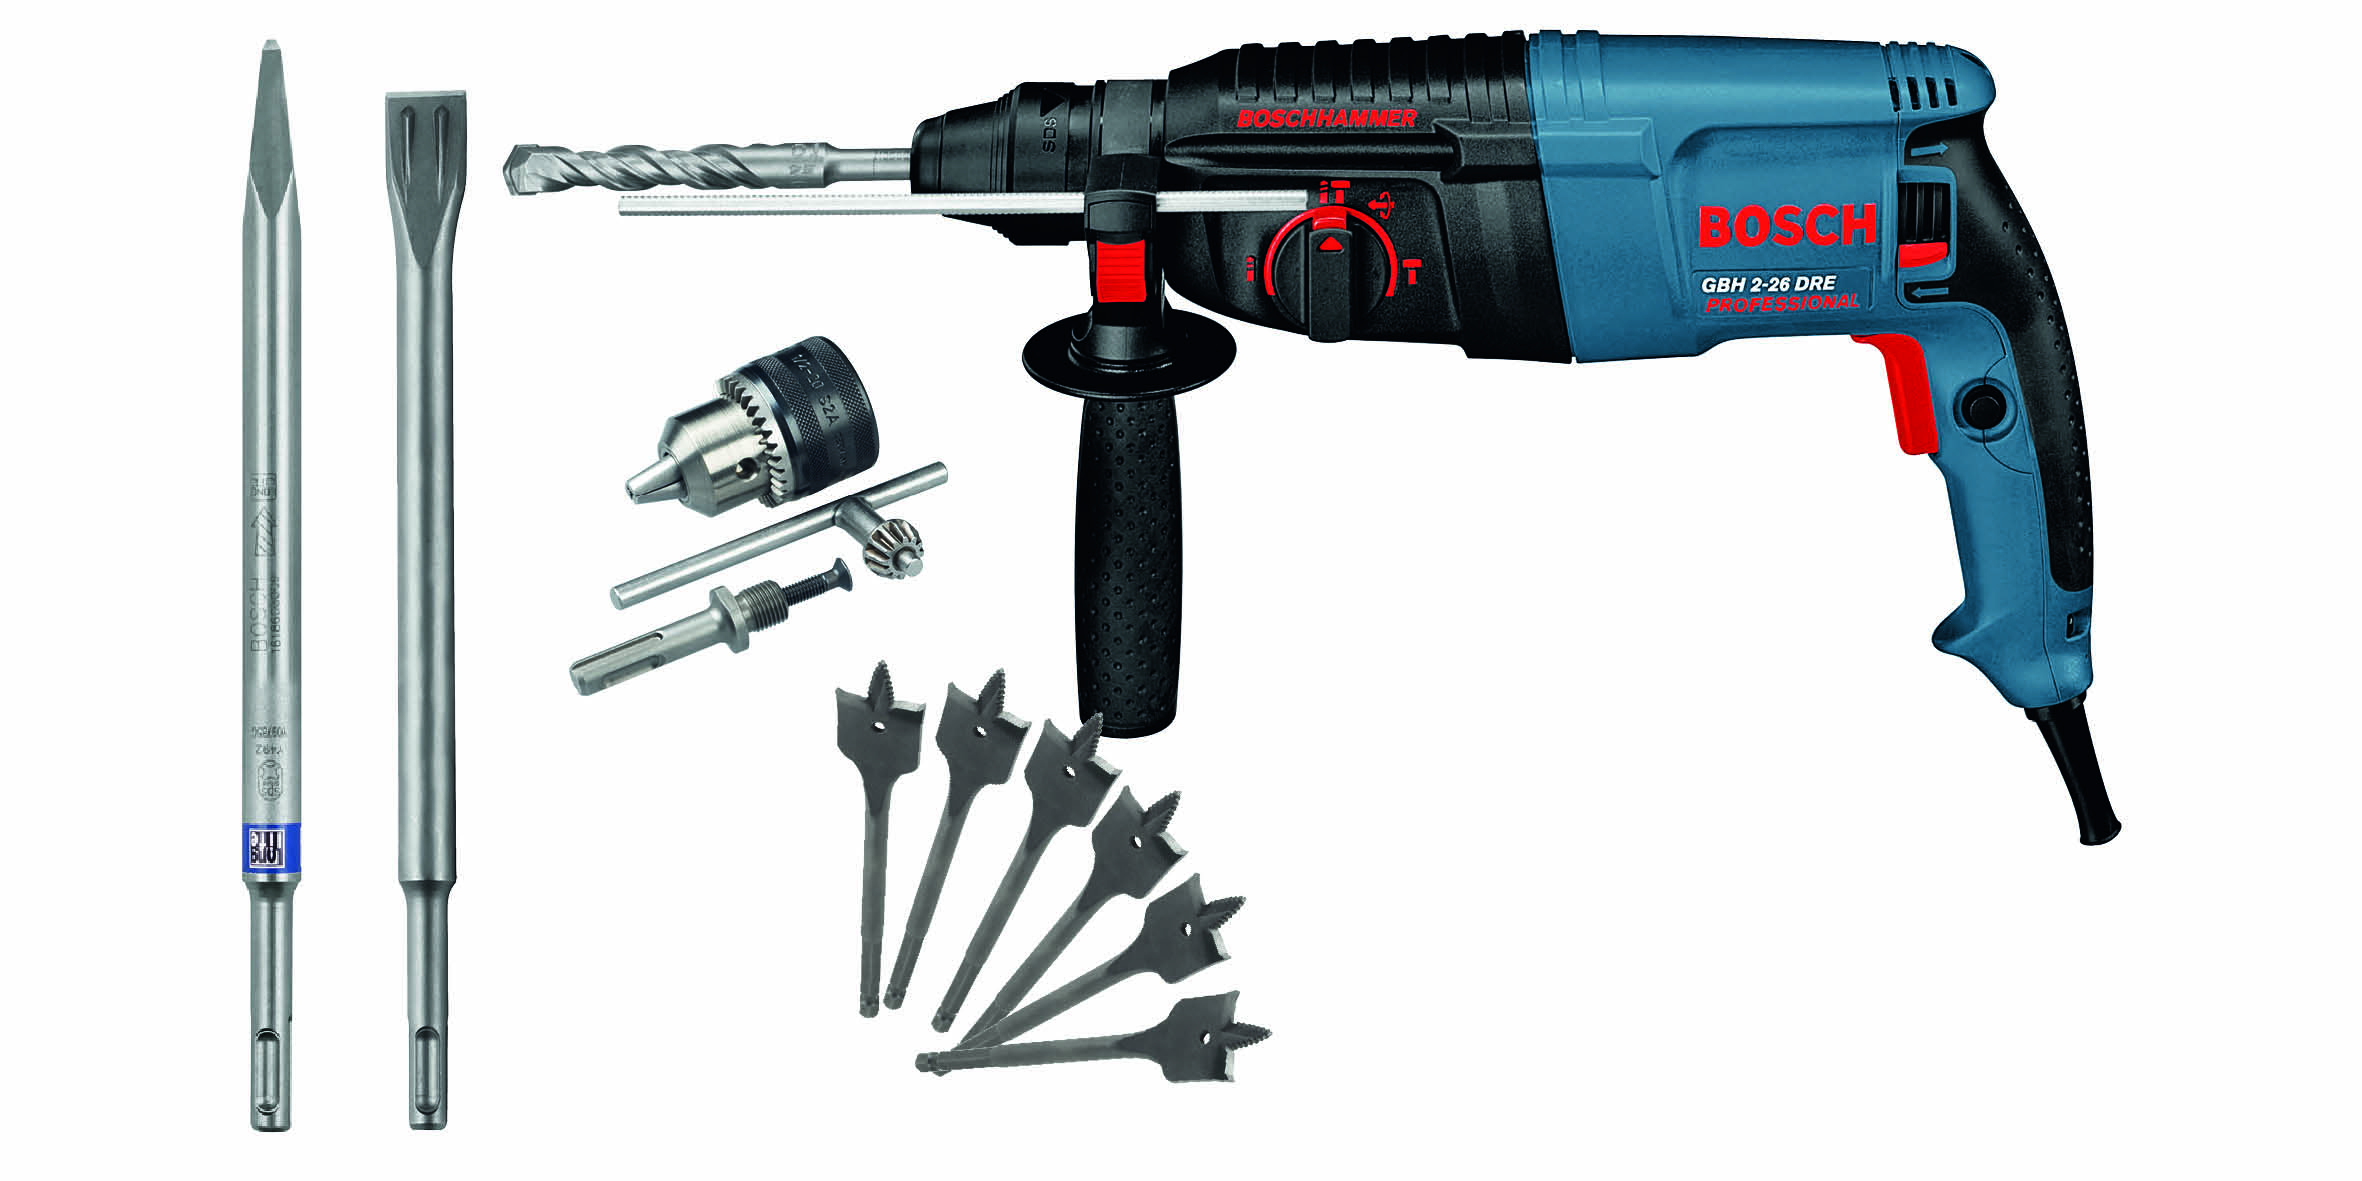 Bosch Gbh 746 De Rotary Hammer He Sturdy Power Pack The Bor 3 28 Dre 800w Mode